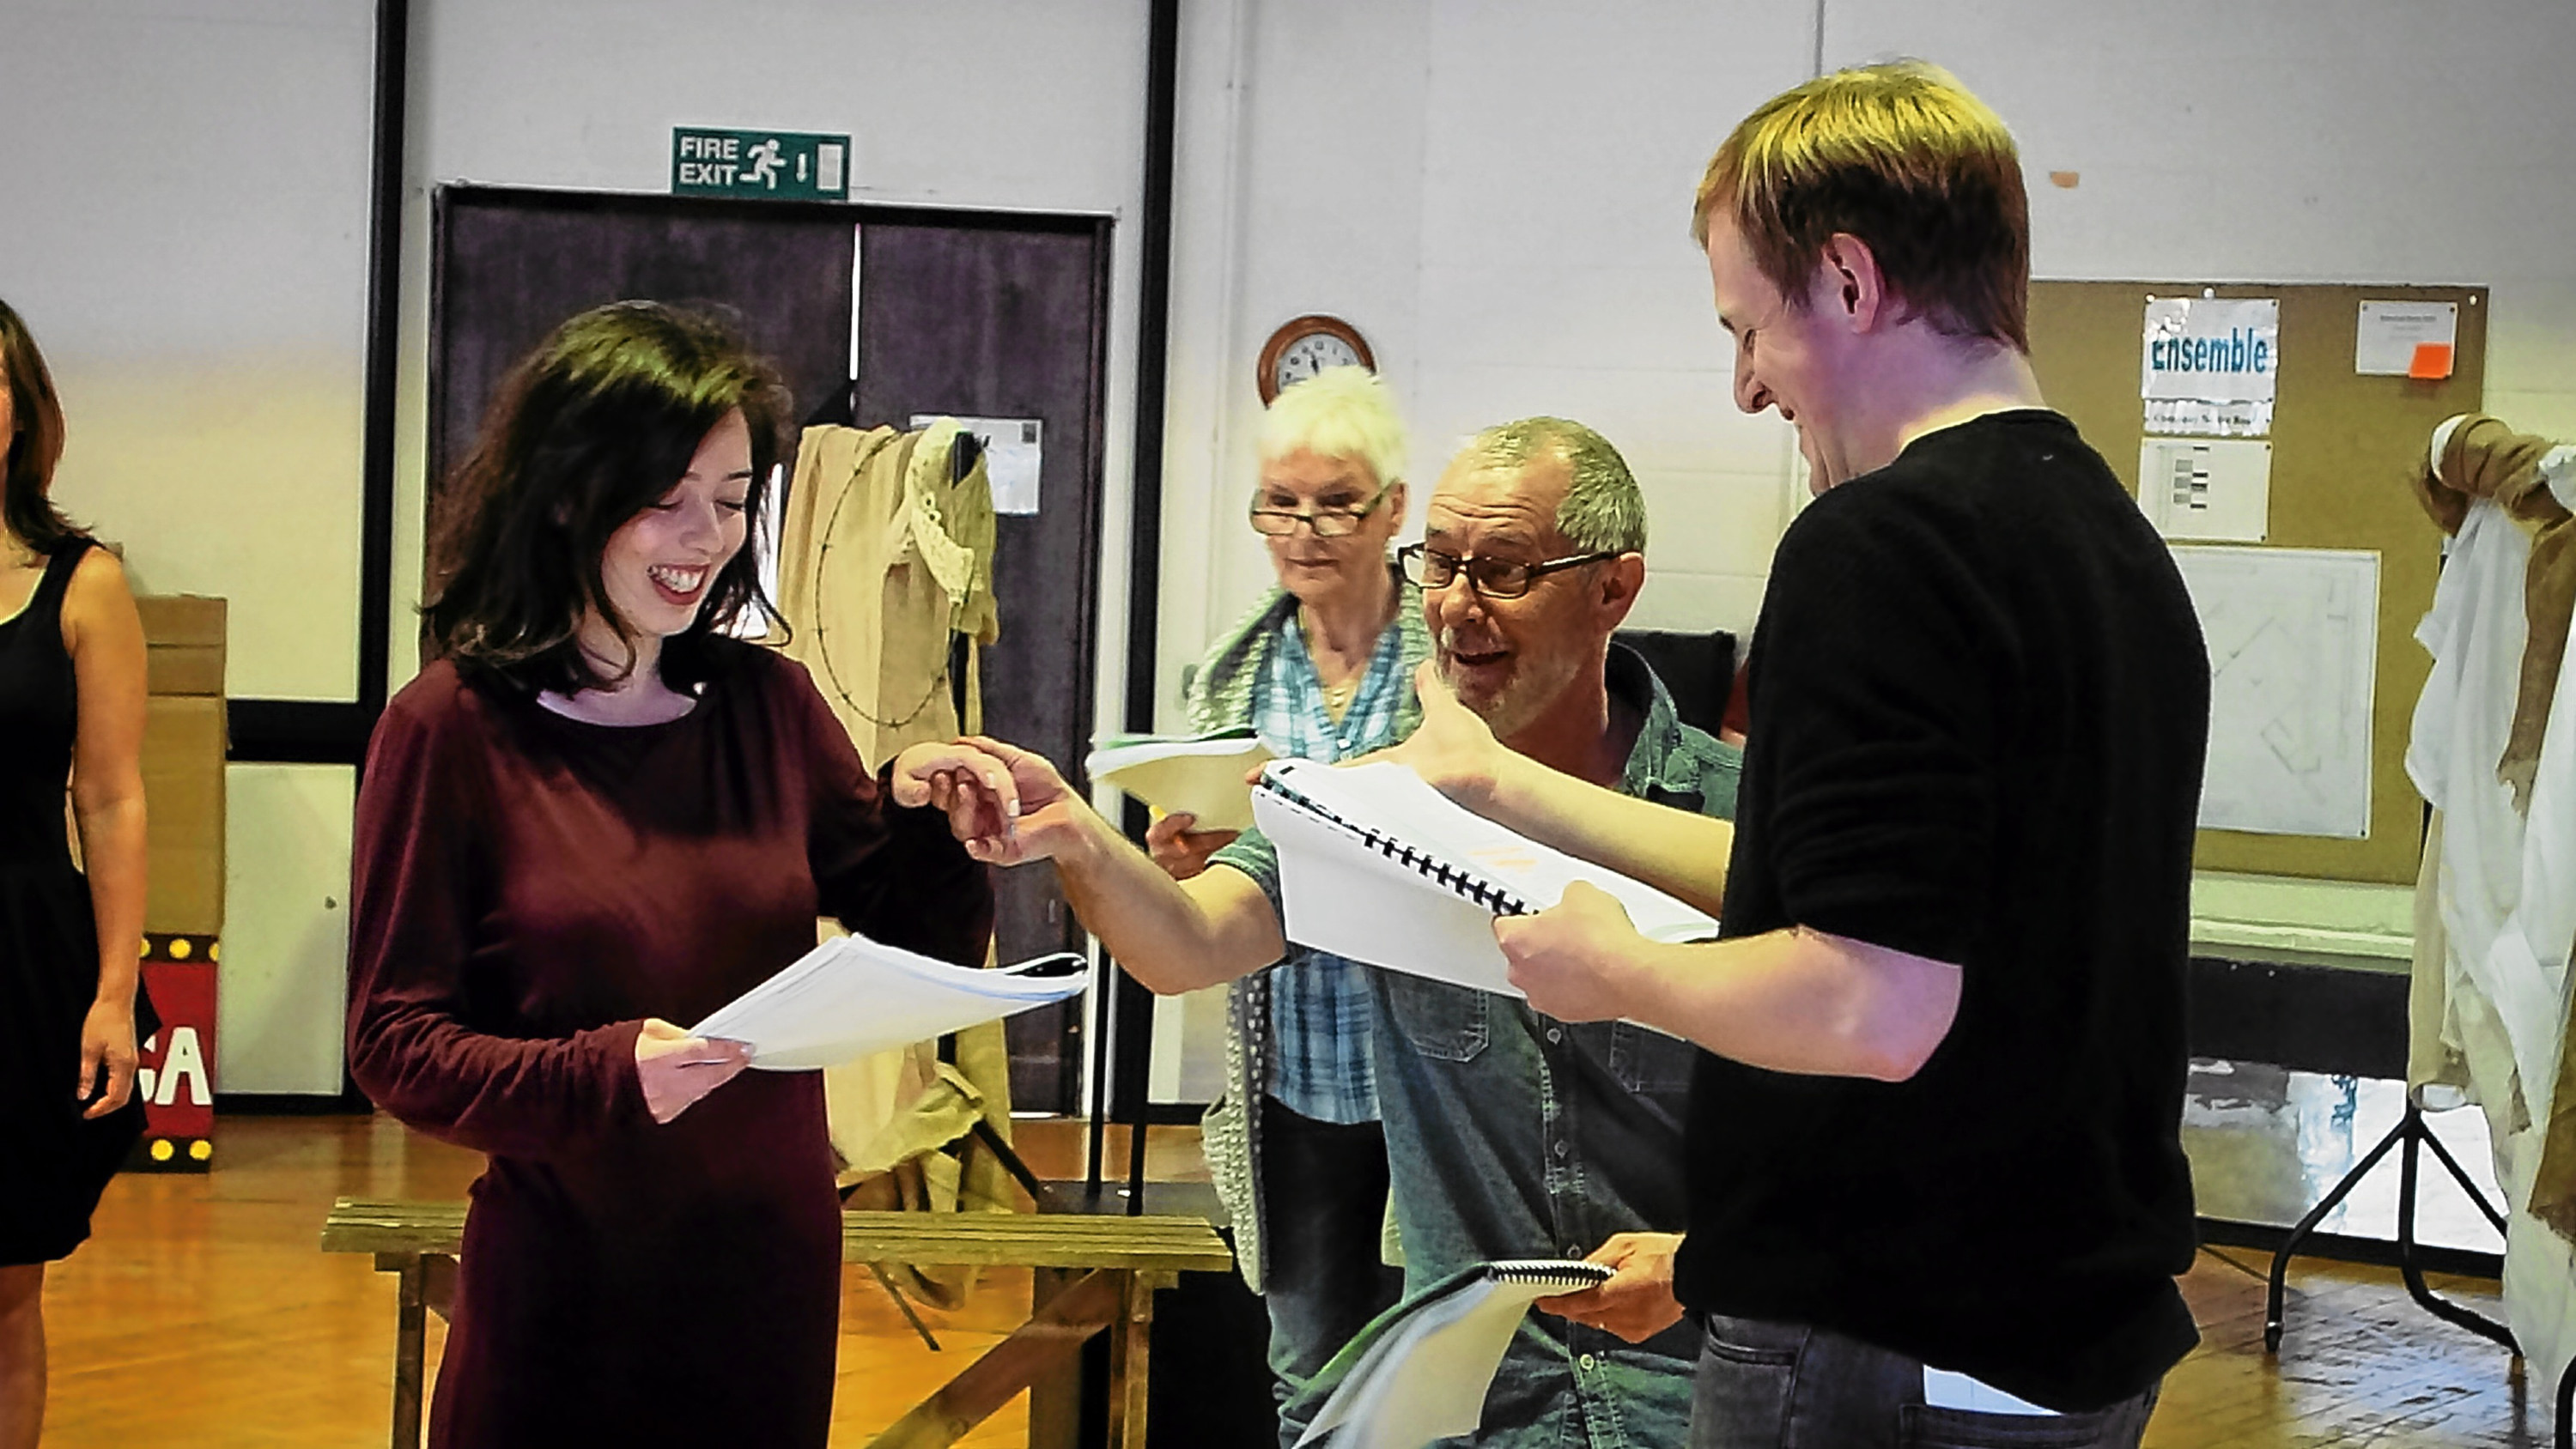 Much Ado About Nothing rehearsals at the Dundee Rep